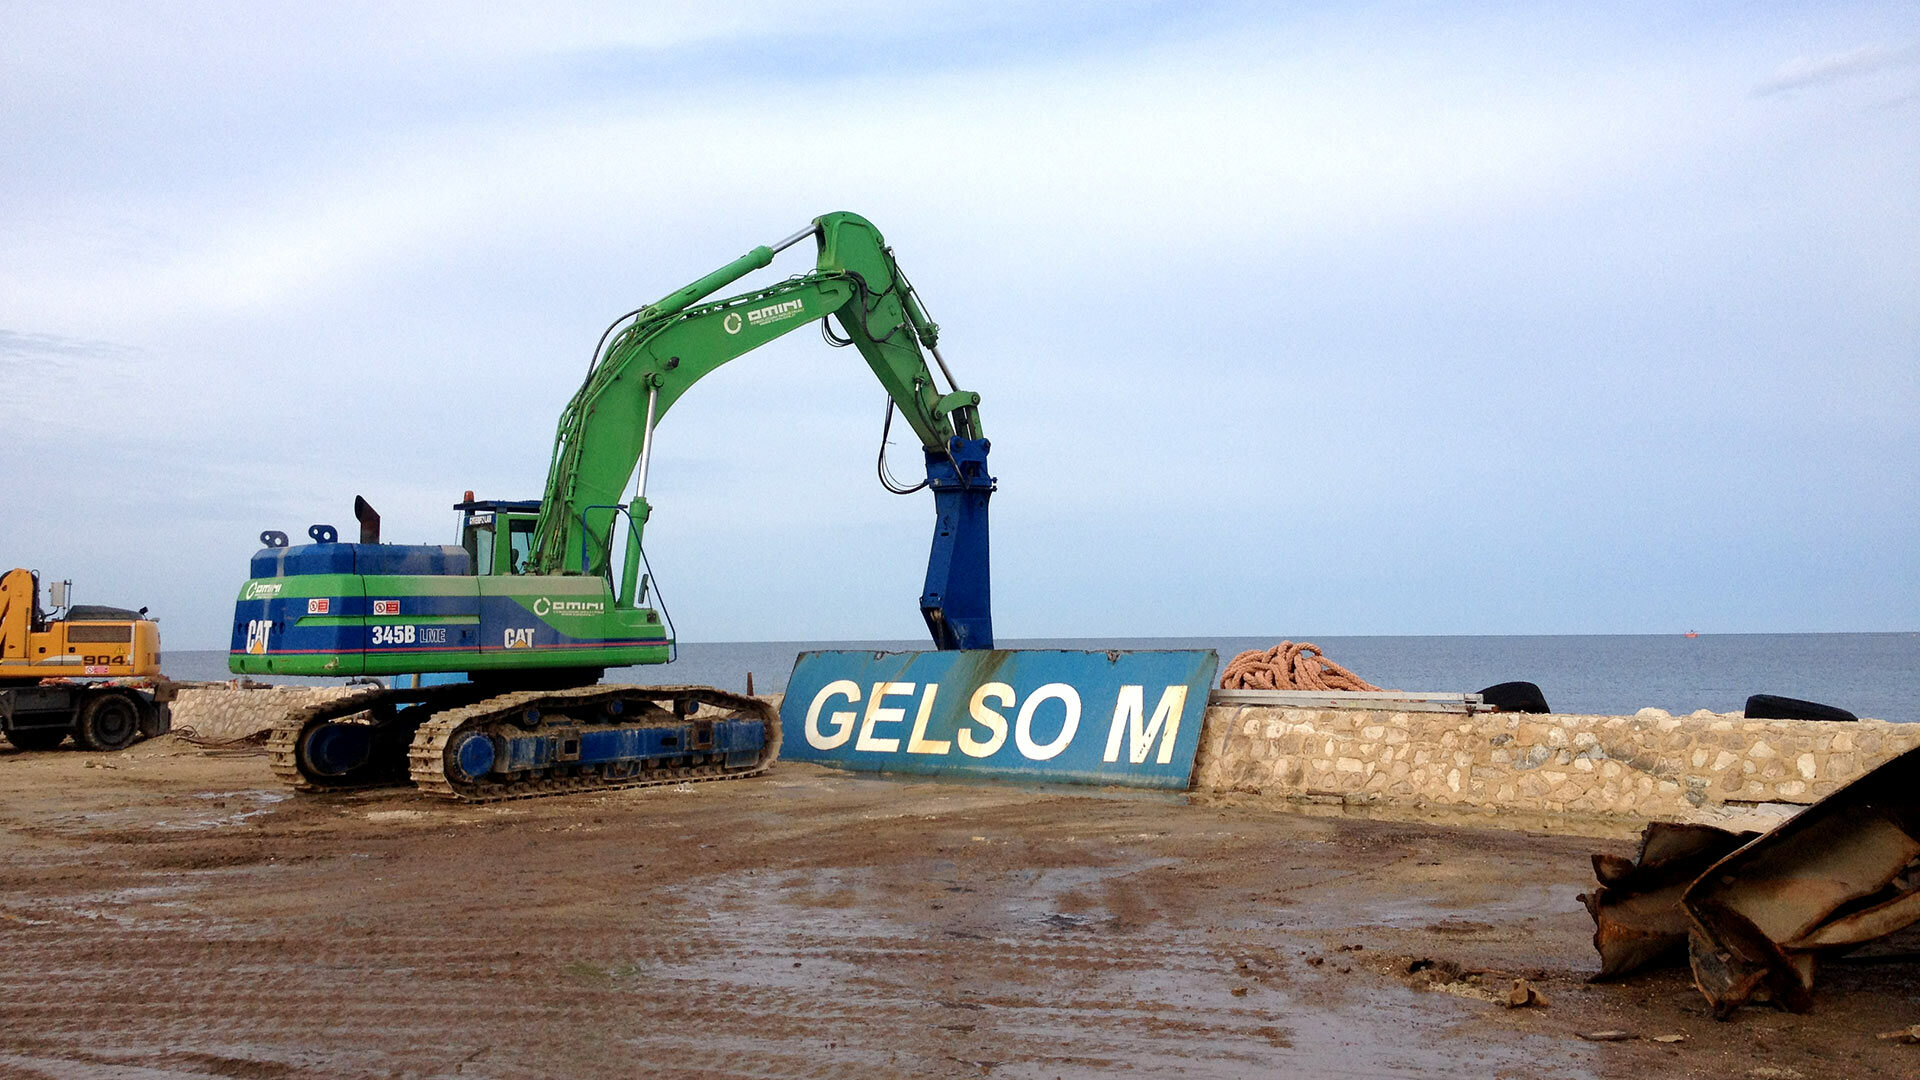 gelso 01